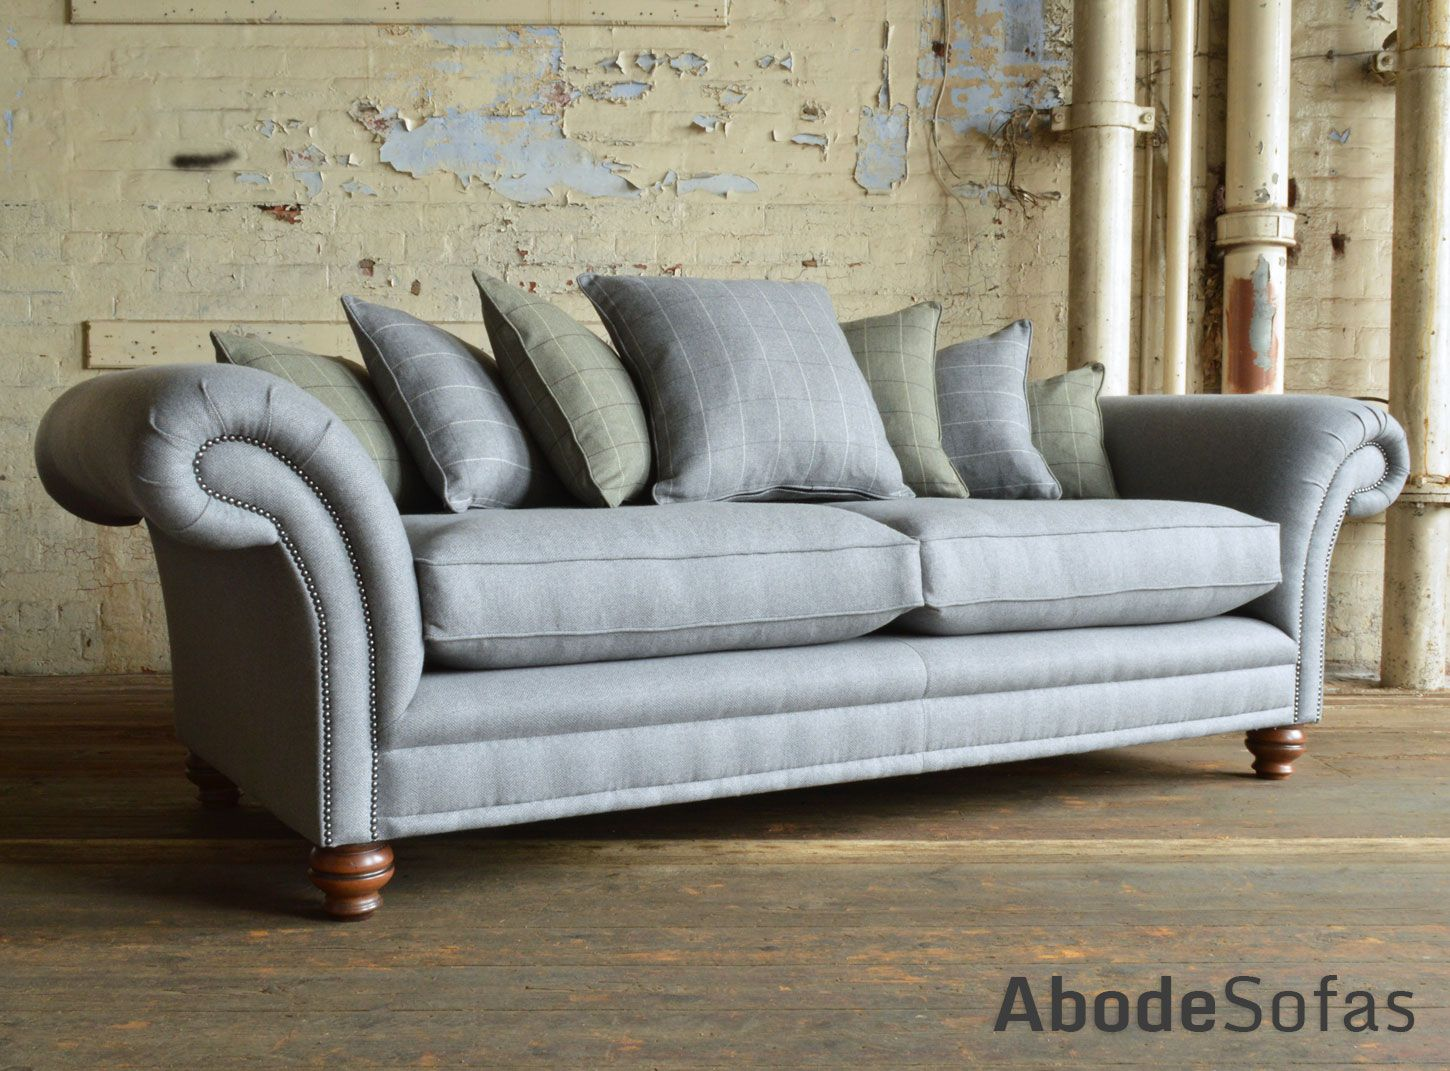 British handmade cotswold scatter back chesterfield sofa shown in british handmade cotswold scatter back chesterfield sofa shown in grey herringbone wool and olive tartan parisarafo Image collections